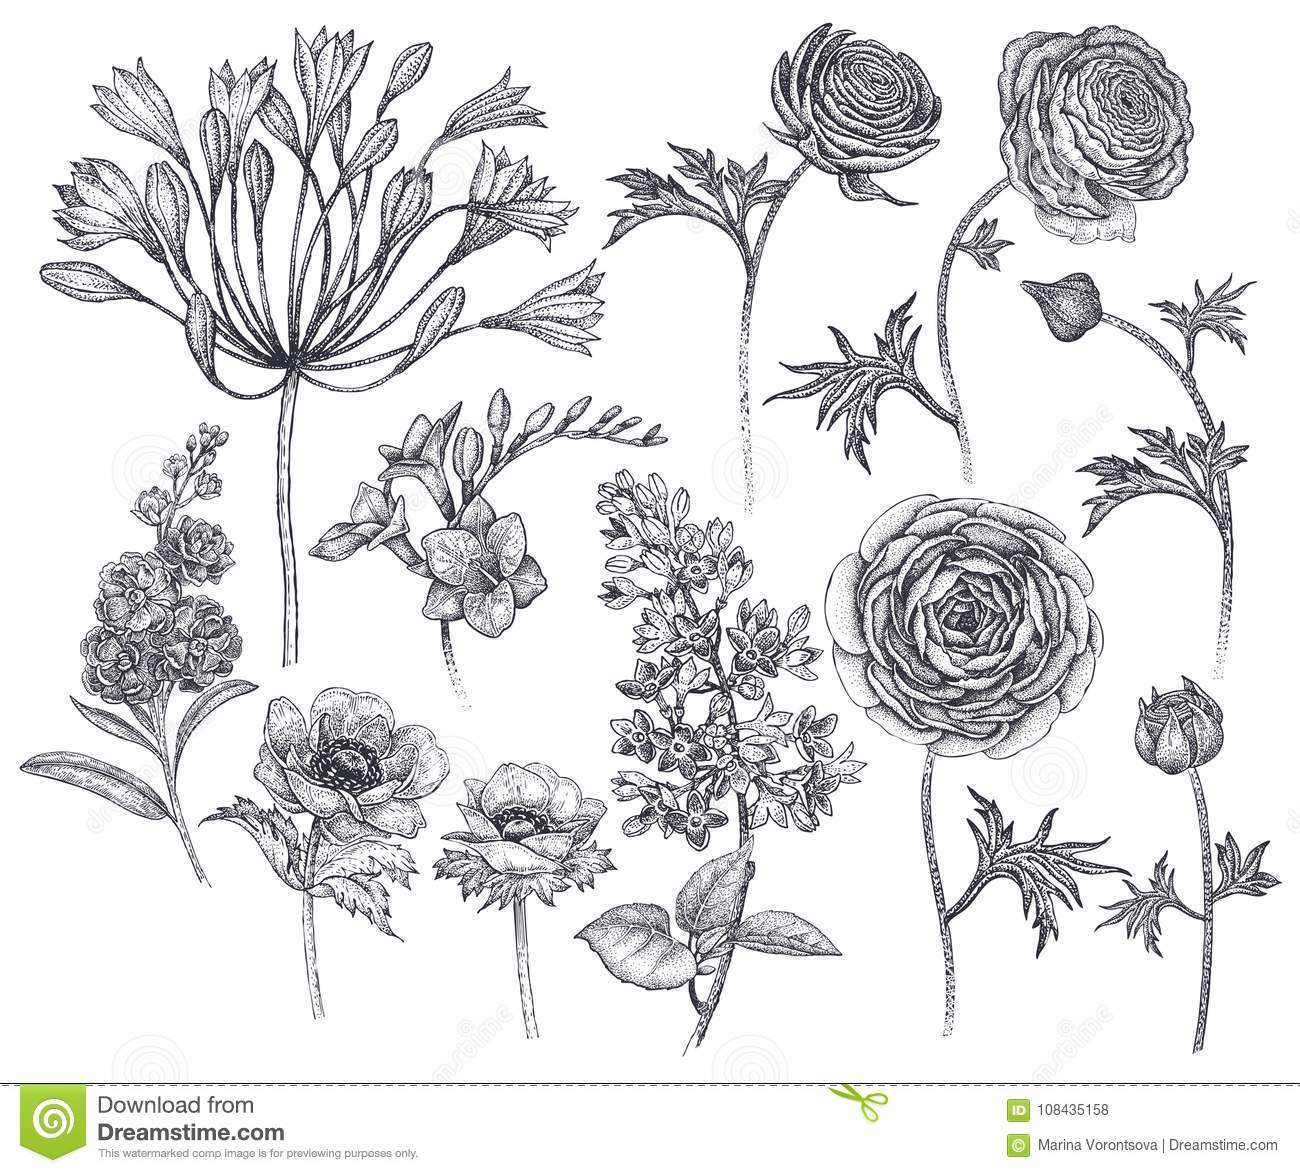 0501a68be Hand drawing African lily, ranunculus, anemones, lilac, freesia, violet  black ink on white background. Vector illustration art floral design.